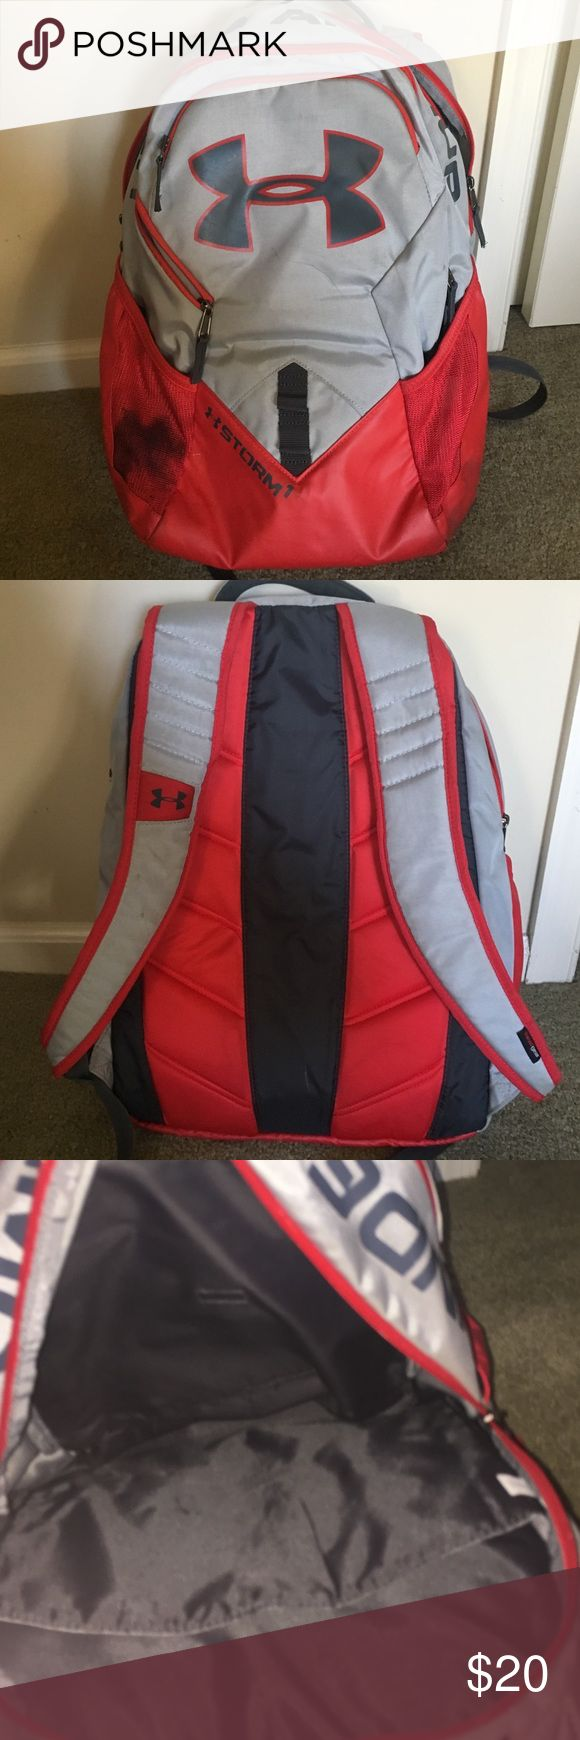 Under armor backpack Only used a few weeks great condition, small stain on the side from pencil led. Under Armour Bags Backpacks